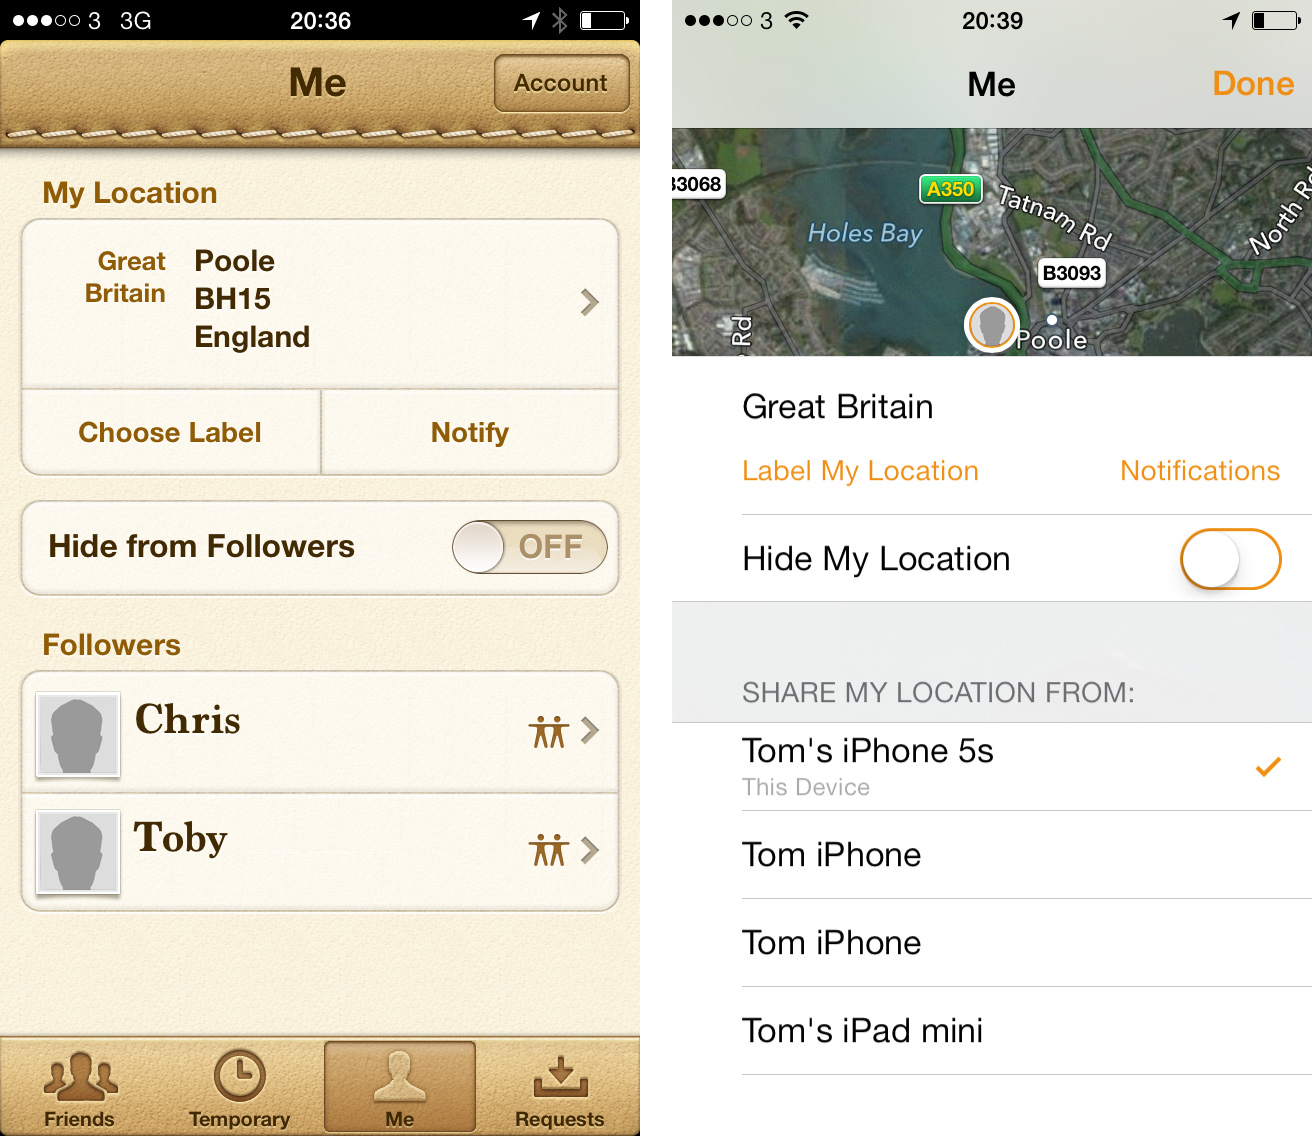 Find my friends app updated with new interface for ios 7 find my friends ios 7 me comparison biocorpaavc Choice Image